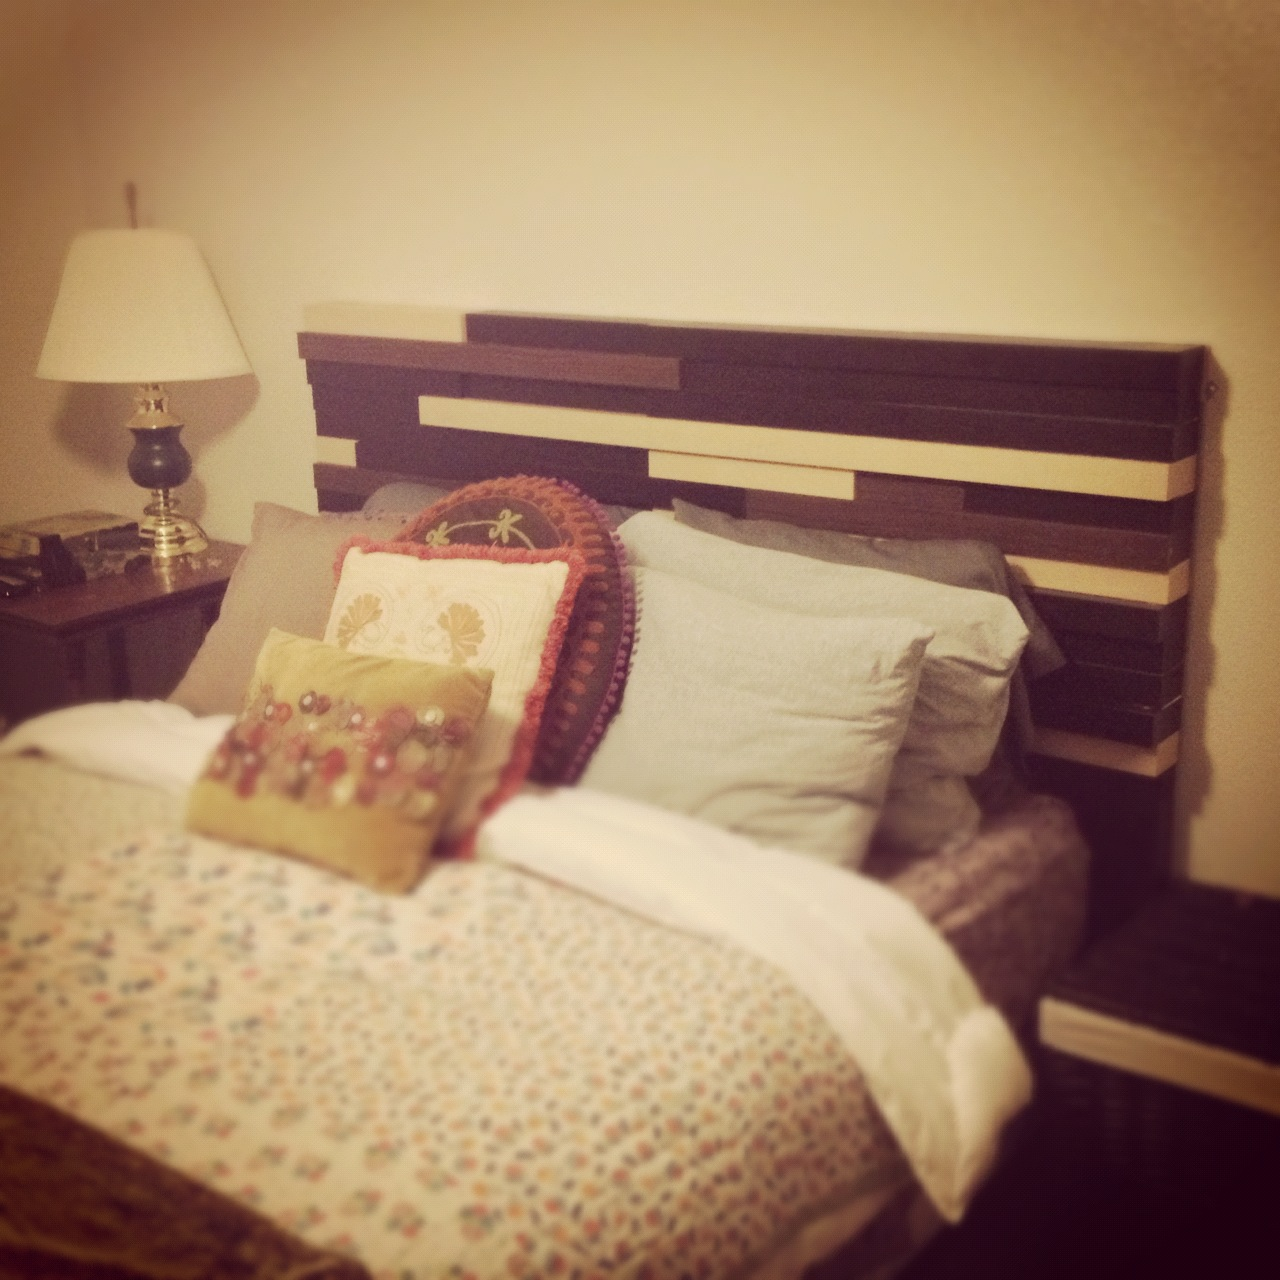 Headboards Archive - IKEA Hackers